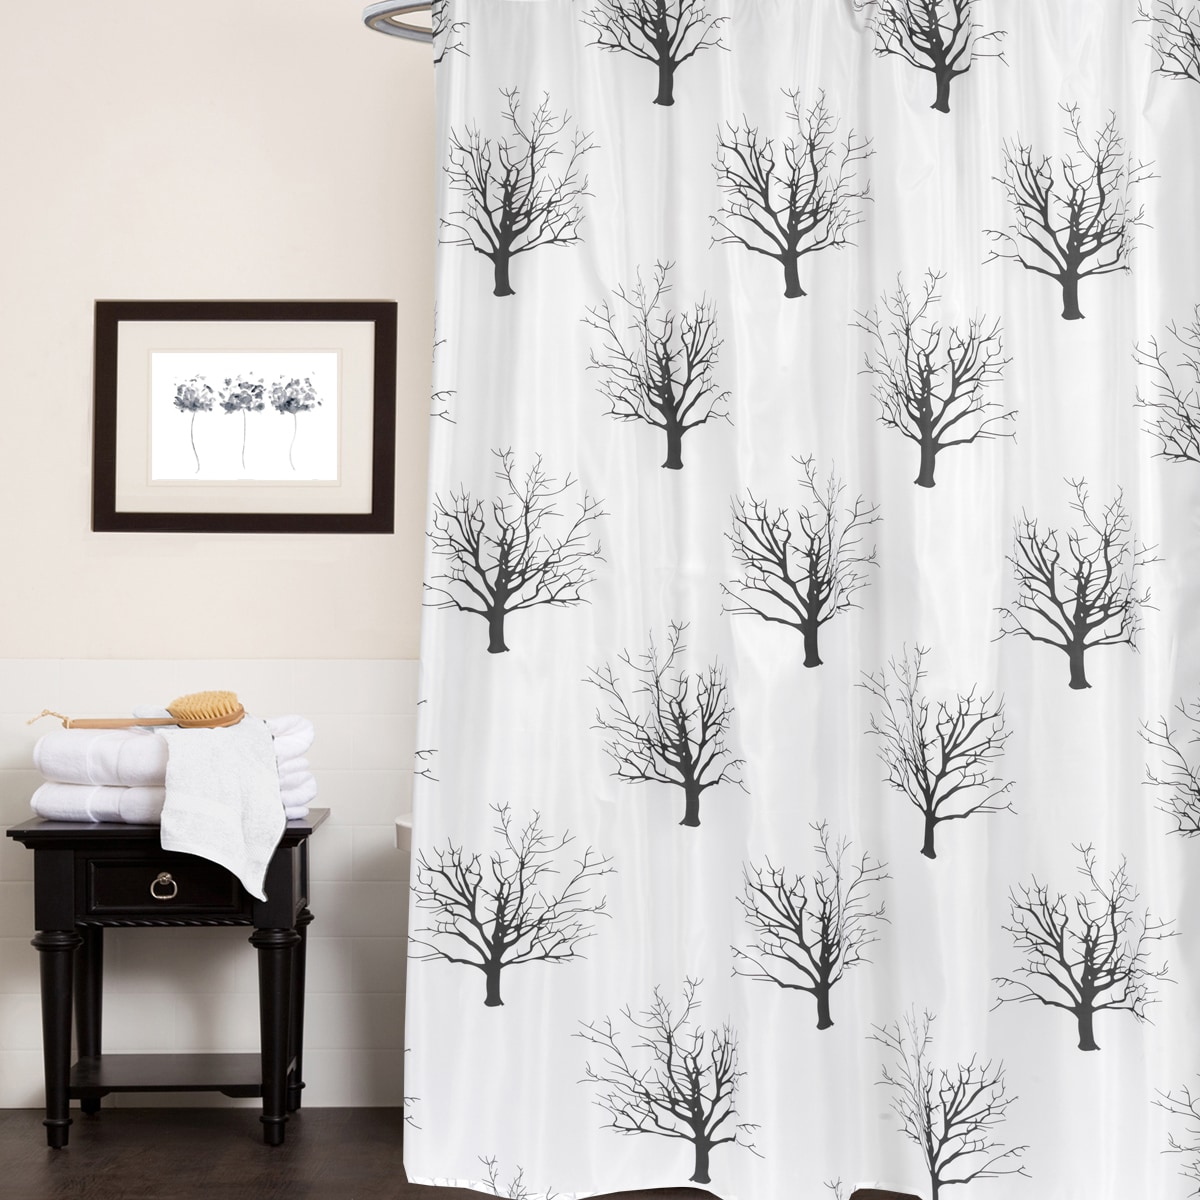 Black And White Tree Silhouette Print Fabric Shower Curtain 70 X72